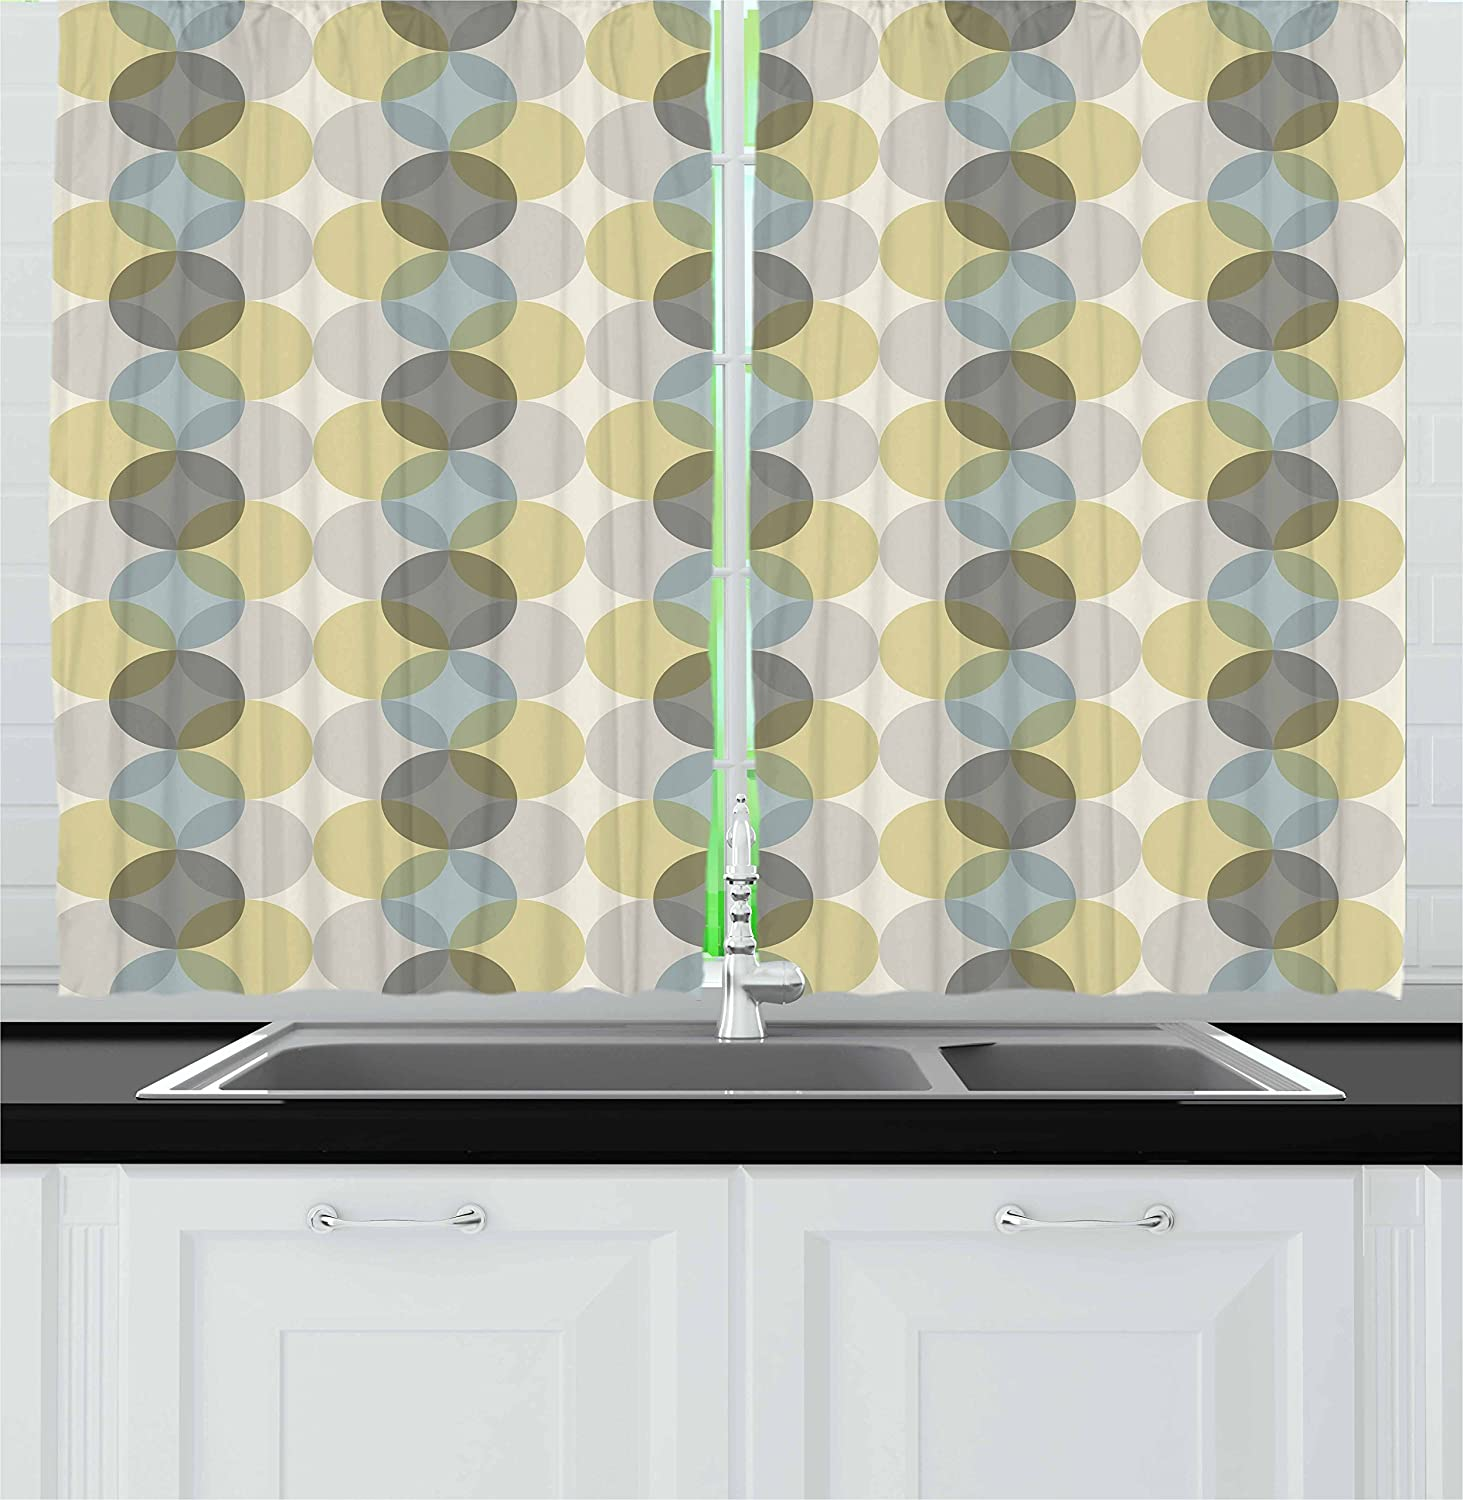 Lunarable Circle Kitchen Curtains Flower Of Life Design Vintage Fifties Midcentury Atomic Art Movement Inspired Window Drapes 2 Panel Set For Kitchen Cafe Decor 55 X 39 Sepia Beige Home